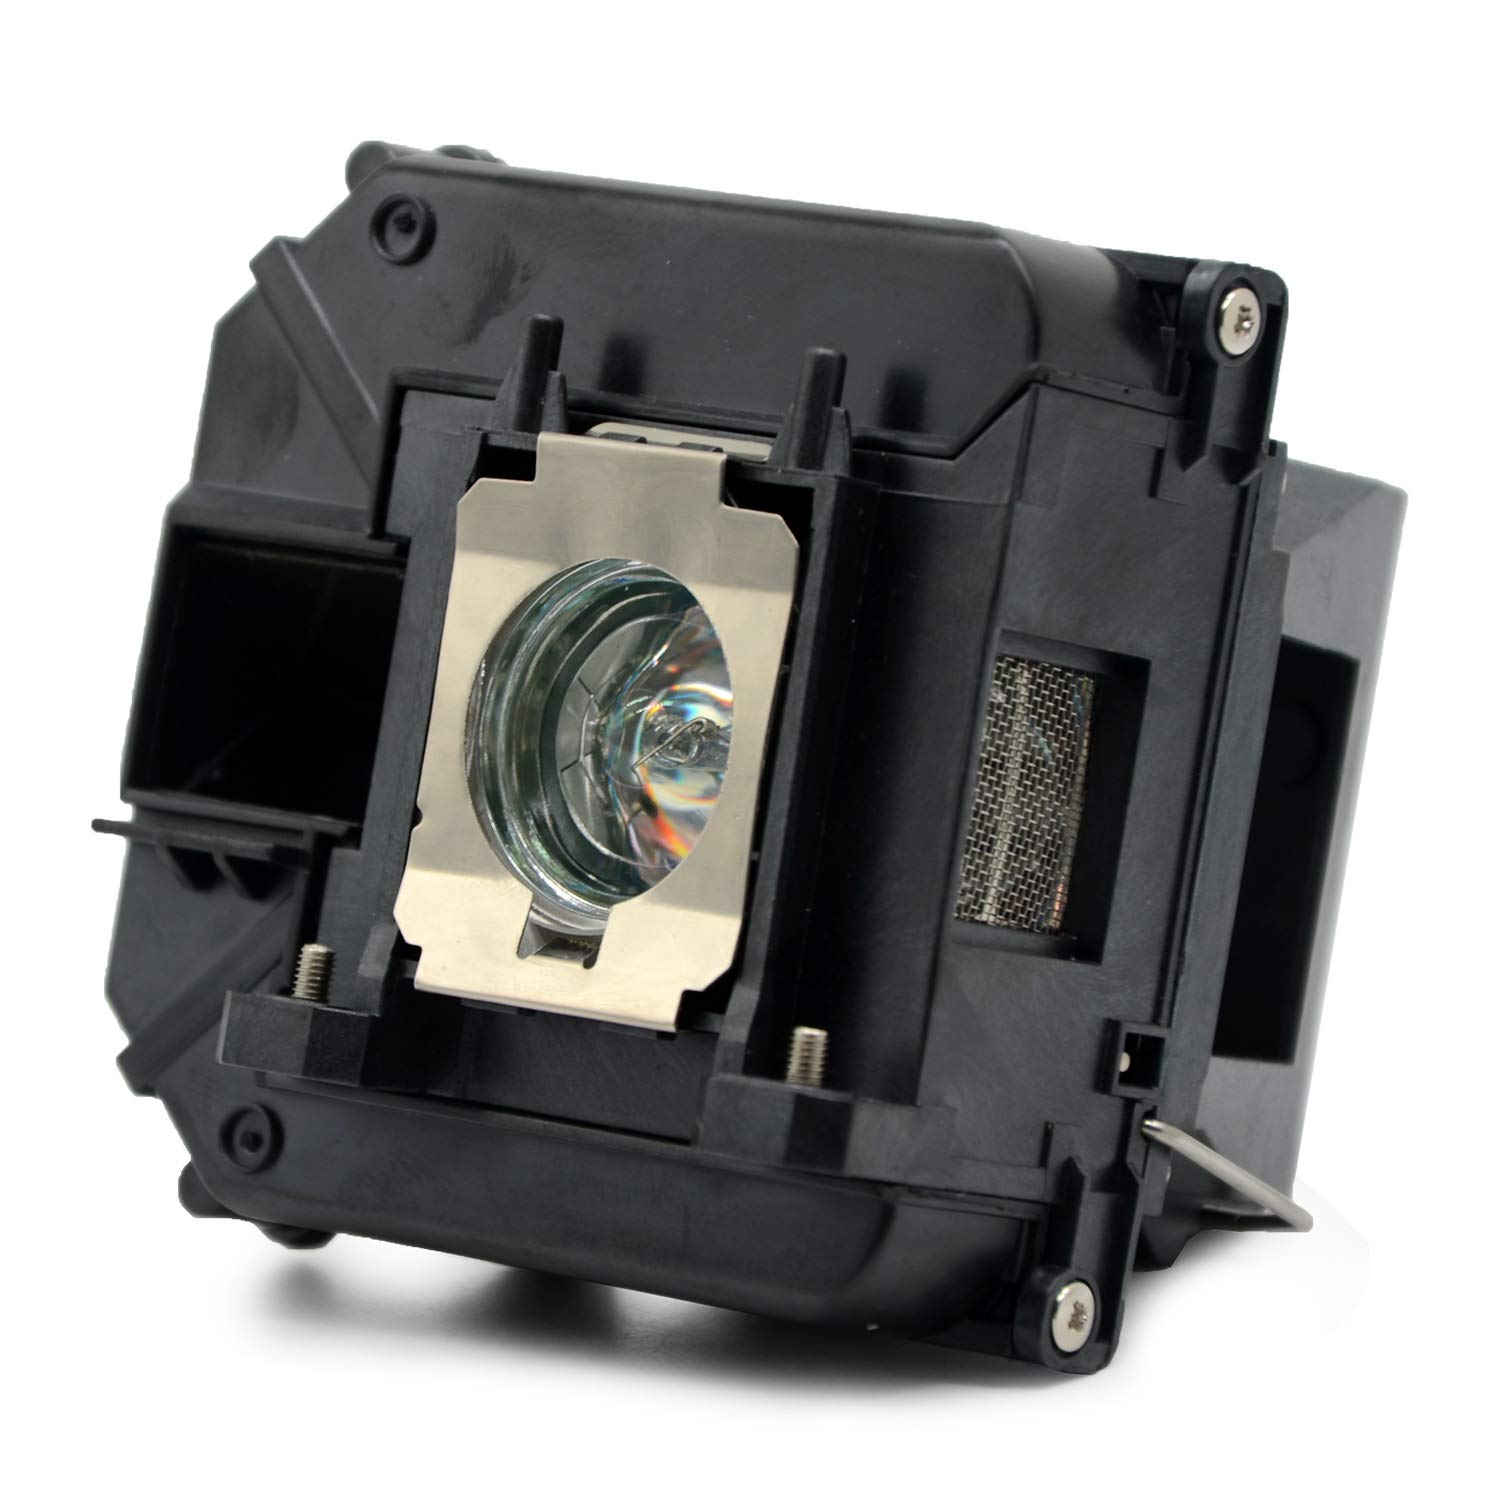 ESolid V13H010L68 Replacement Projector Lamp for Epson ELPLP68 PowerLite Home Cinema 3010 3010E 3020 3020E by Esolid